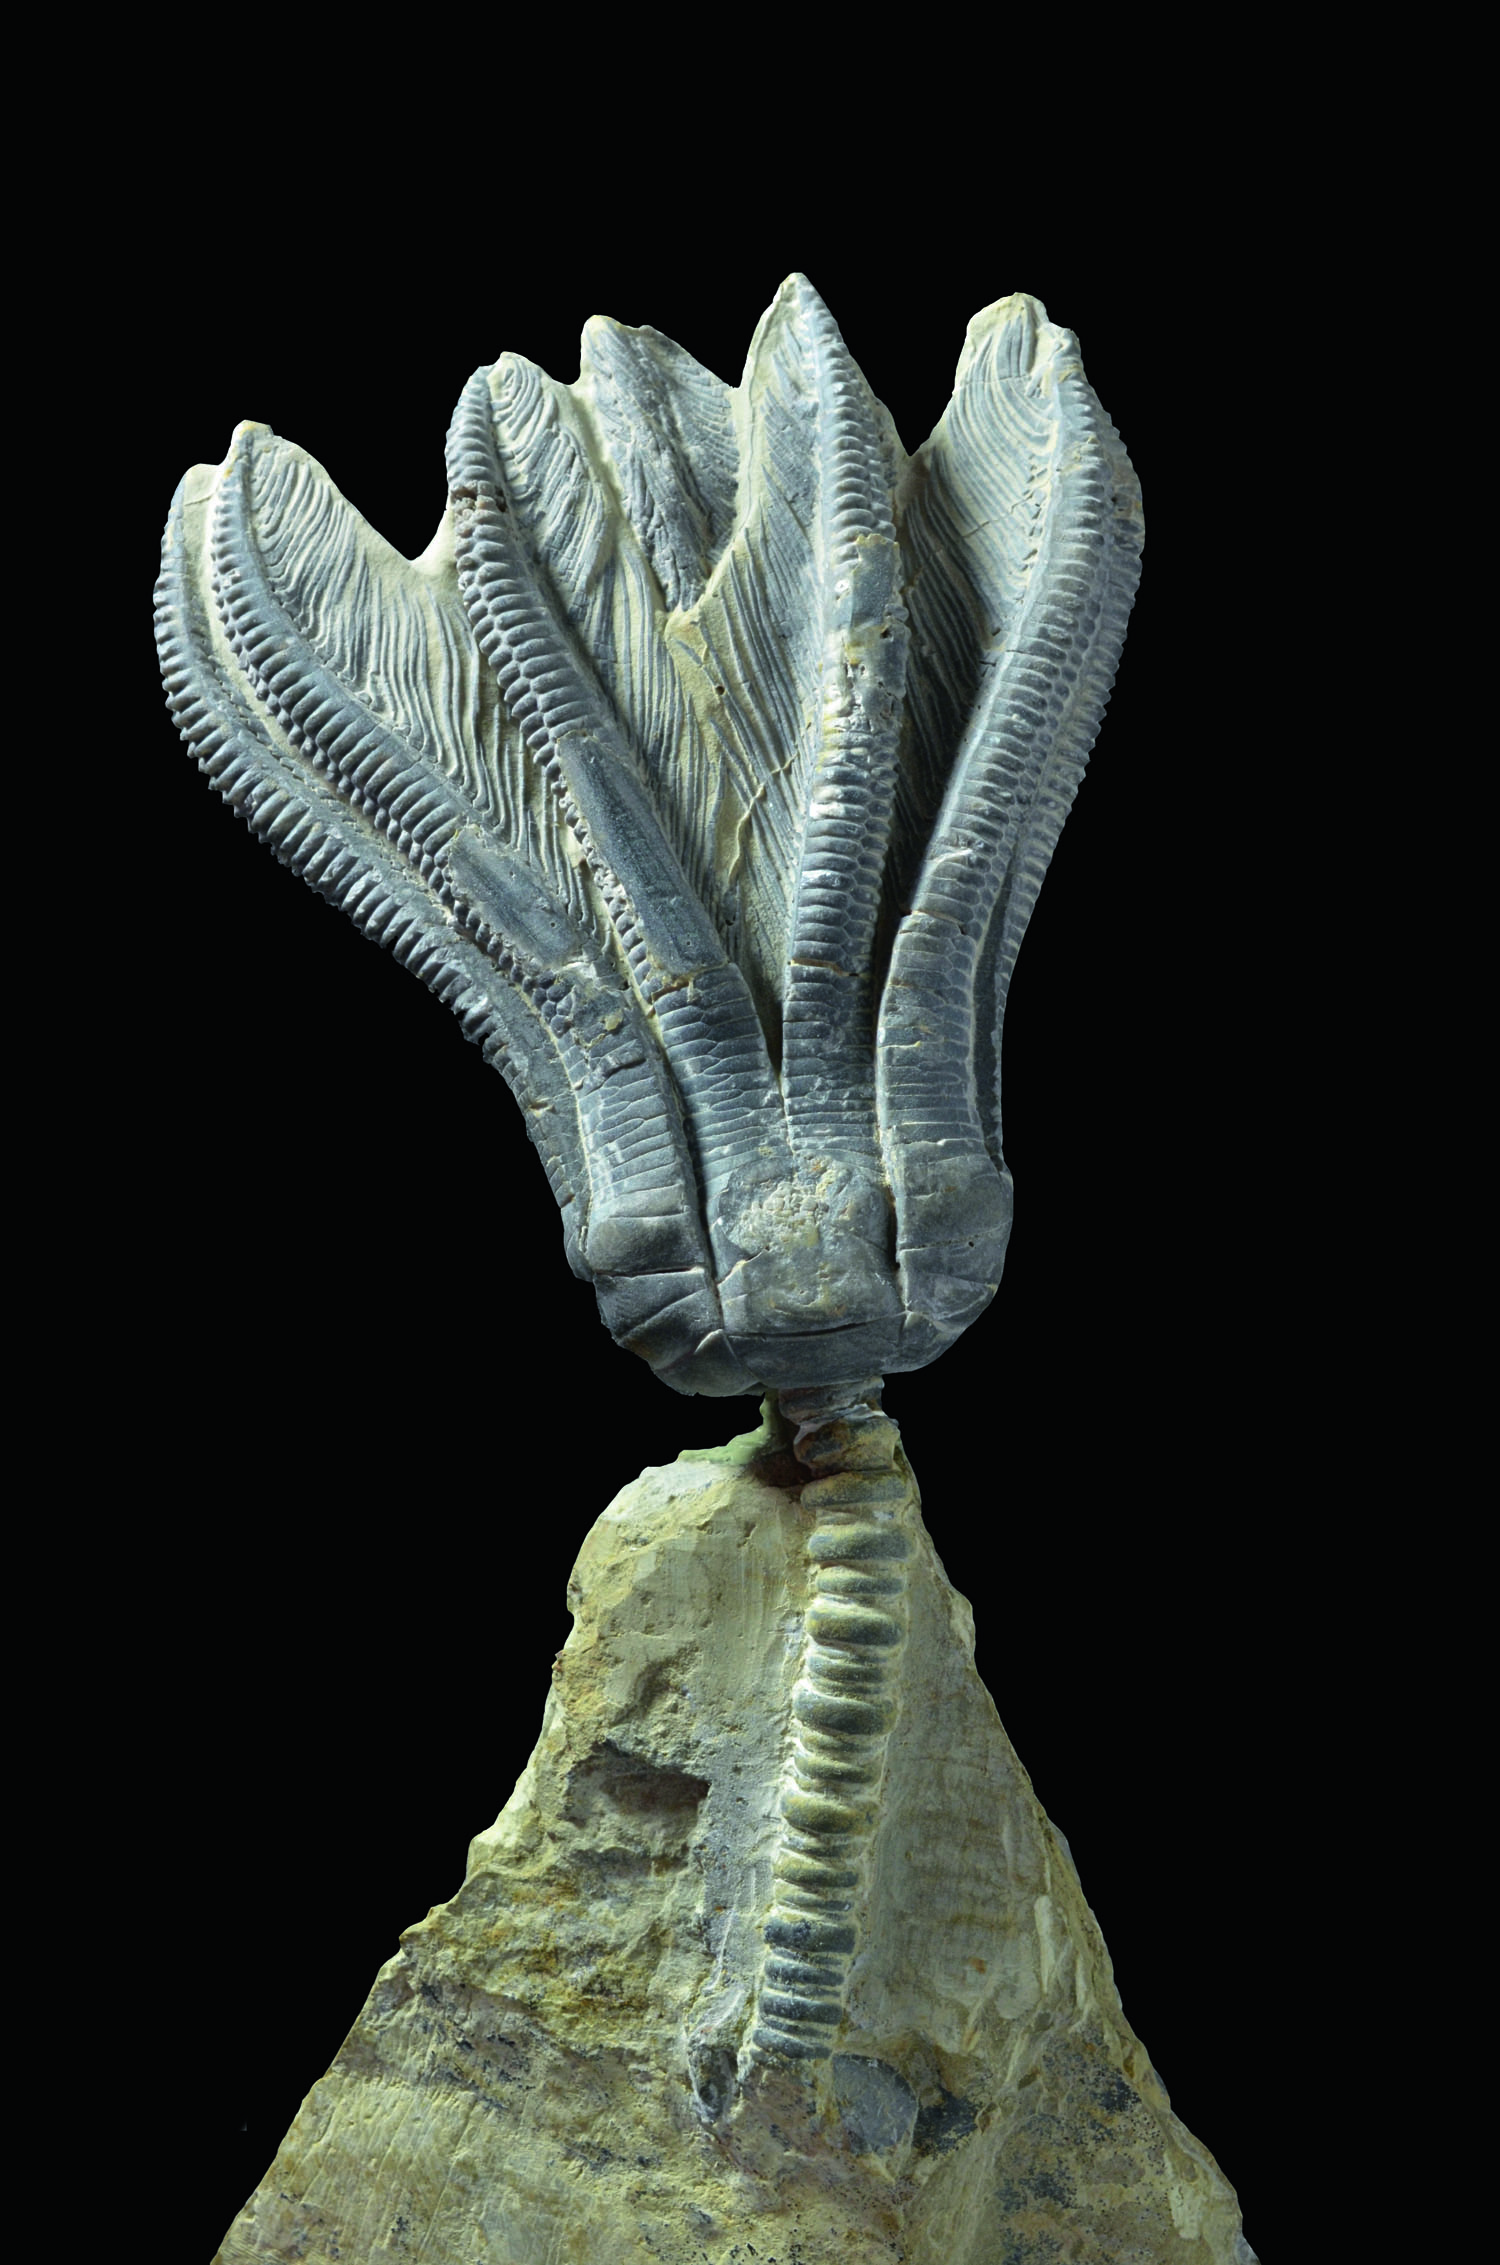 Encrinus liliiformis – a crinoid from the Triassic that made a career for itself